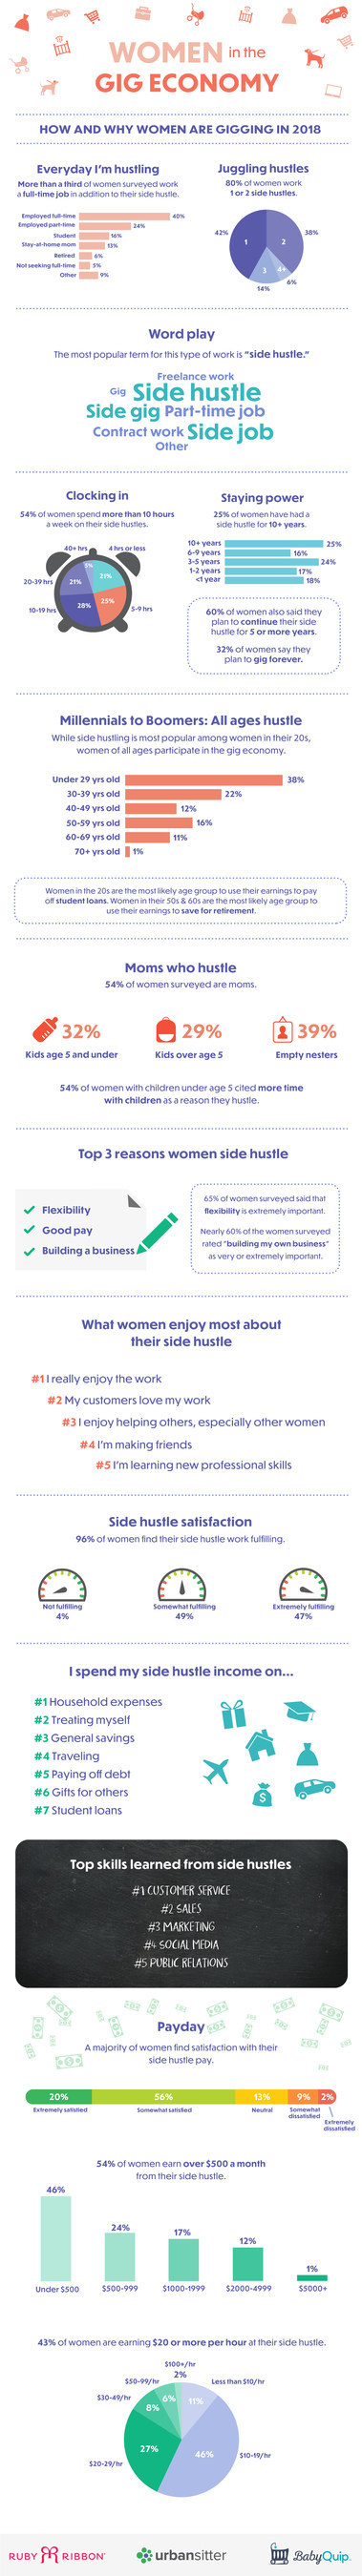 Women_in_the_Gig_Economy_final_Infographic.jpg